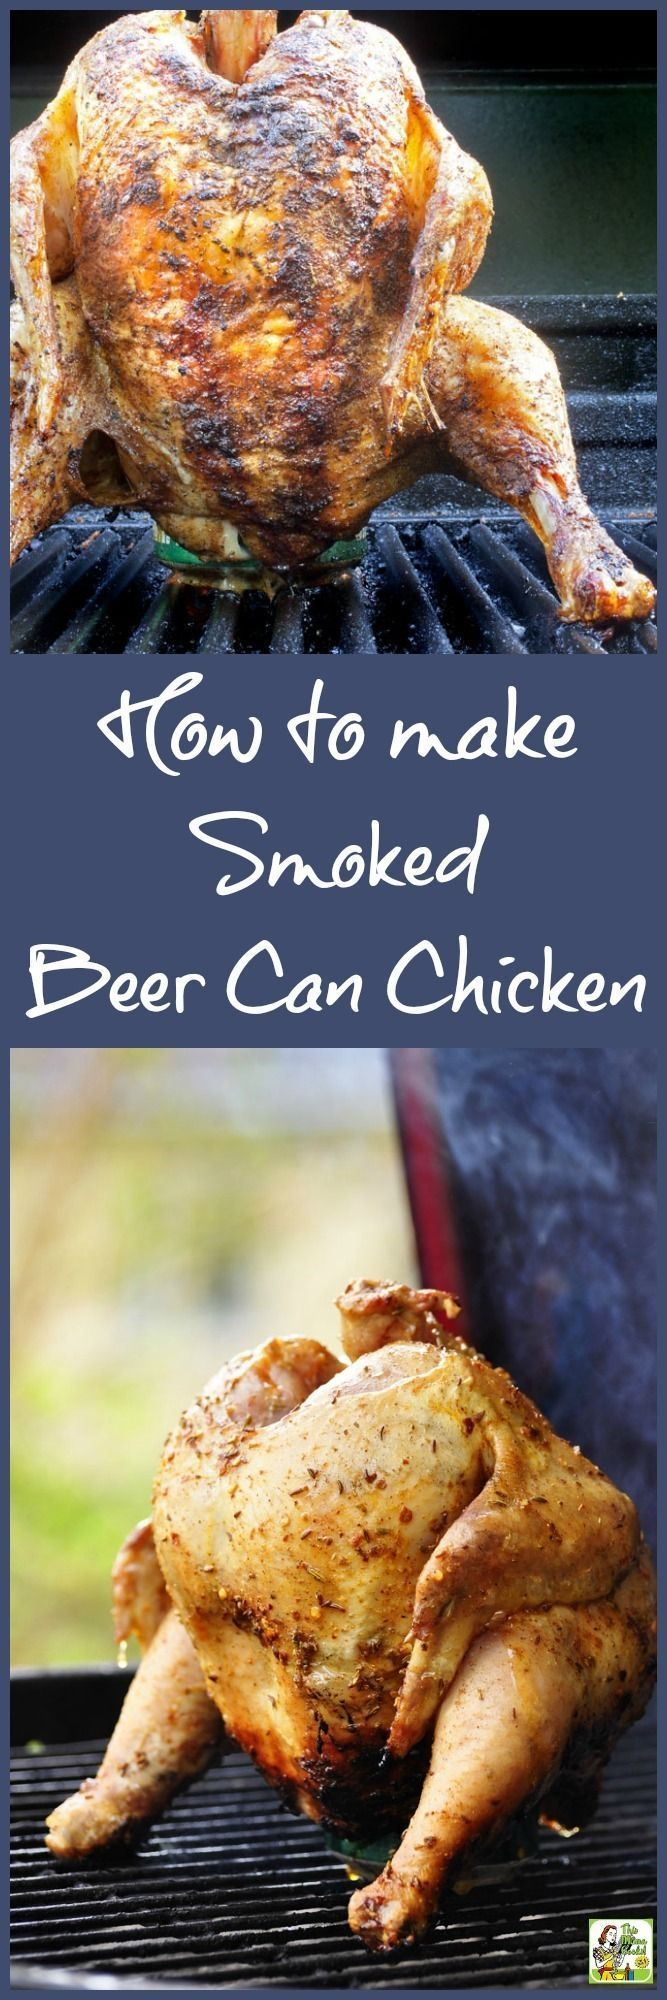 Making smoked beer can chicken is easier than you think if you use bottled marinade or salad dressing and a store bought barbeque rub. Cook the beer can chicken in an electric or gas smoker. Or you can smoke beer can chicken in a grill type smoker like a Green Egg or Kamodo Joe. Best of all? Smoked beer can chicken tastes great and is worth the little bit of effort!